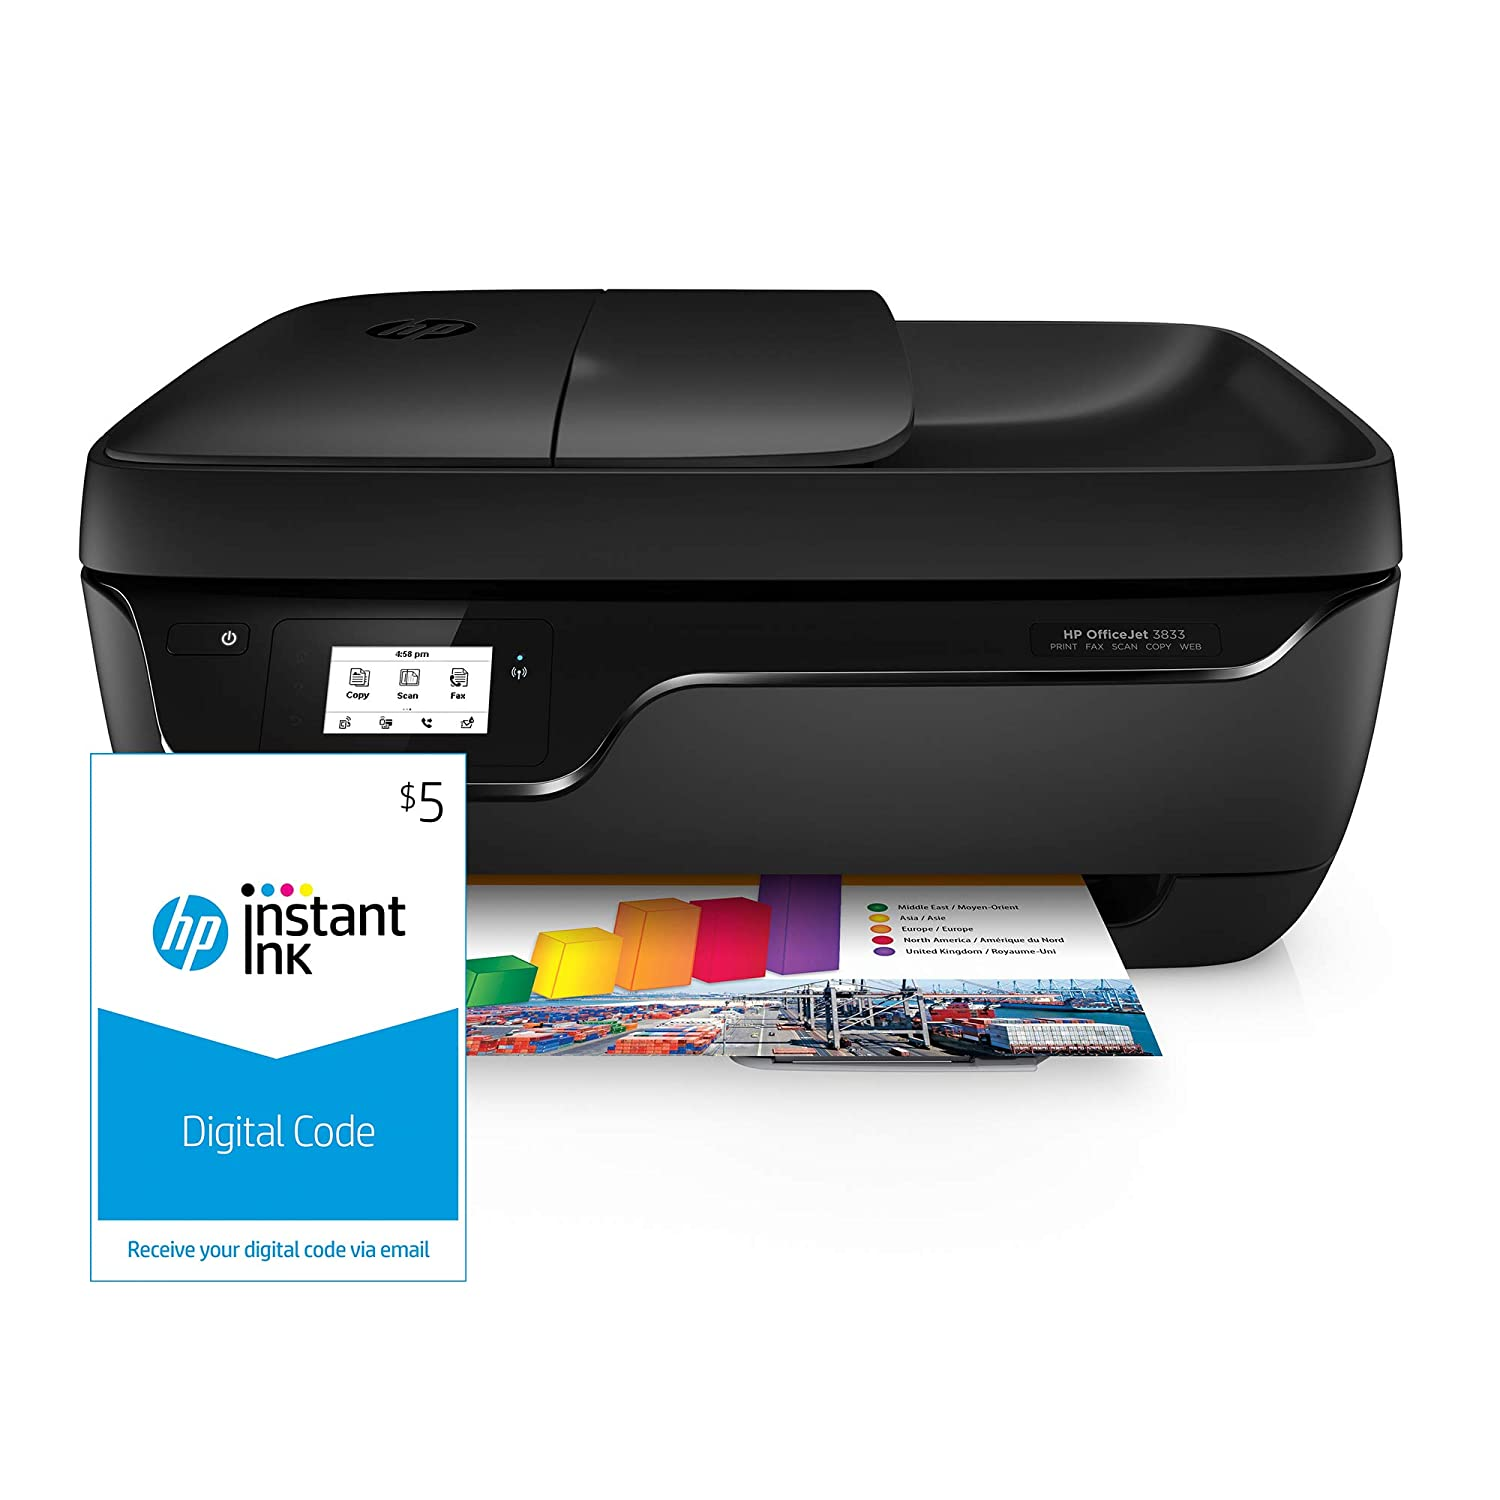 HP OfficeJet 3833 All-in-One Printer, HP Instant Ink & Amazon Dash  Replenishment ready (K7V37A) and Instant Ink $5 Prepaid Code